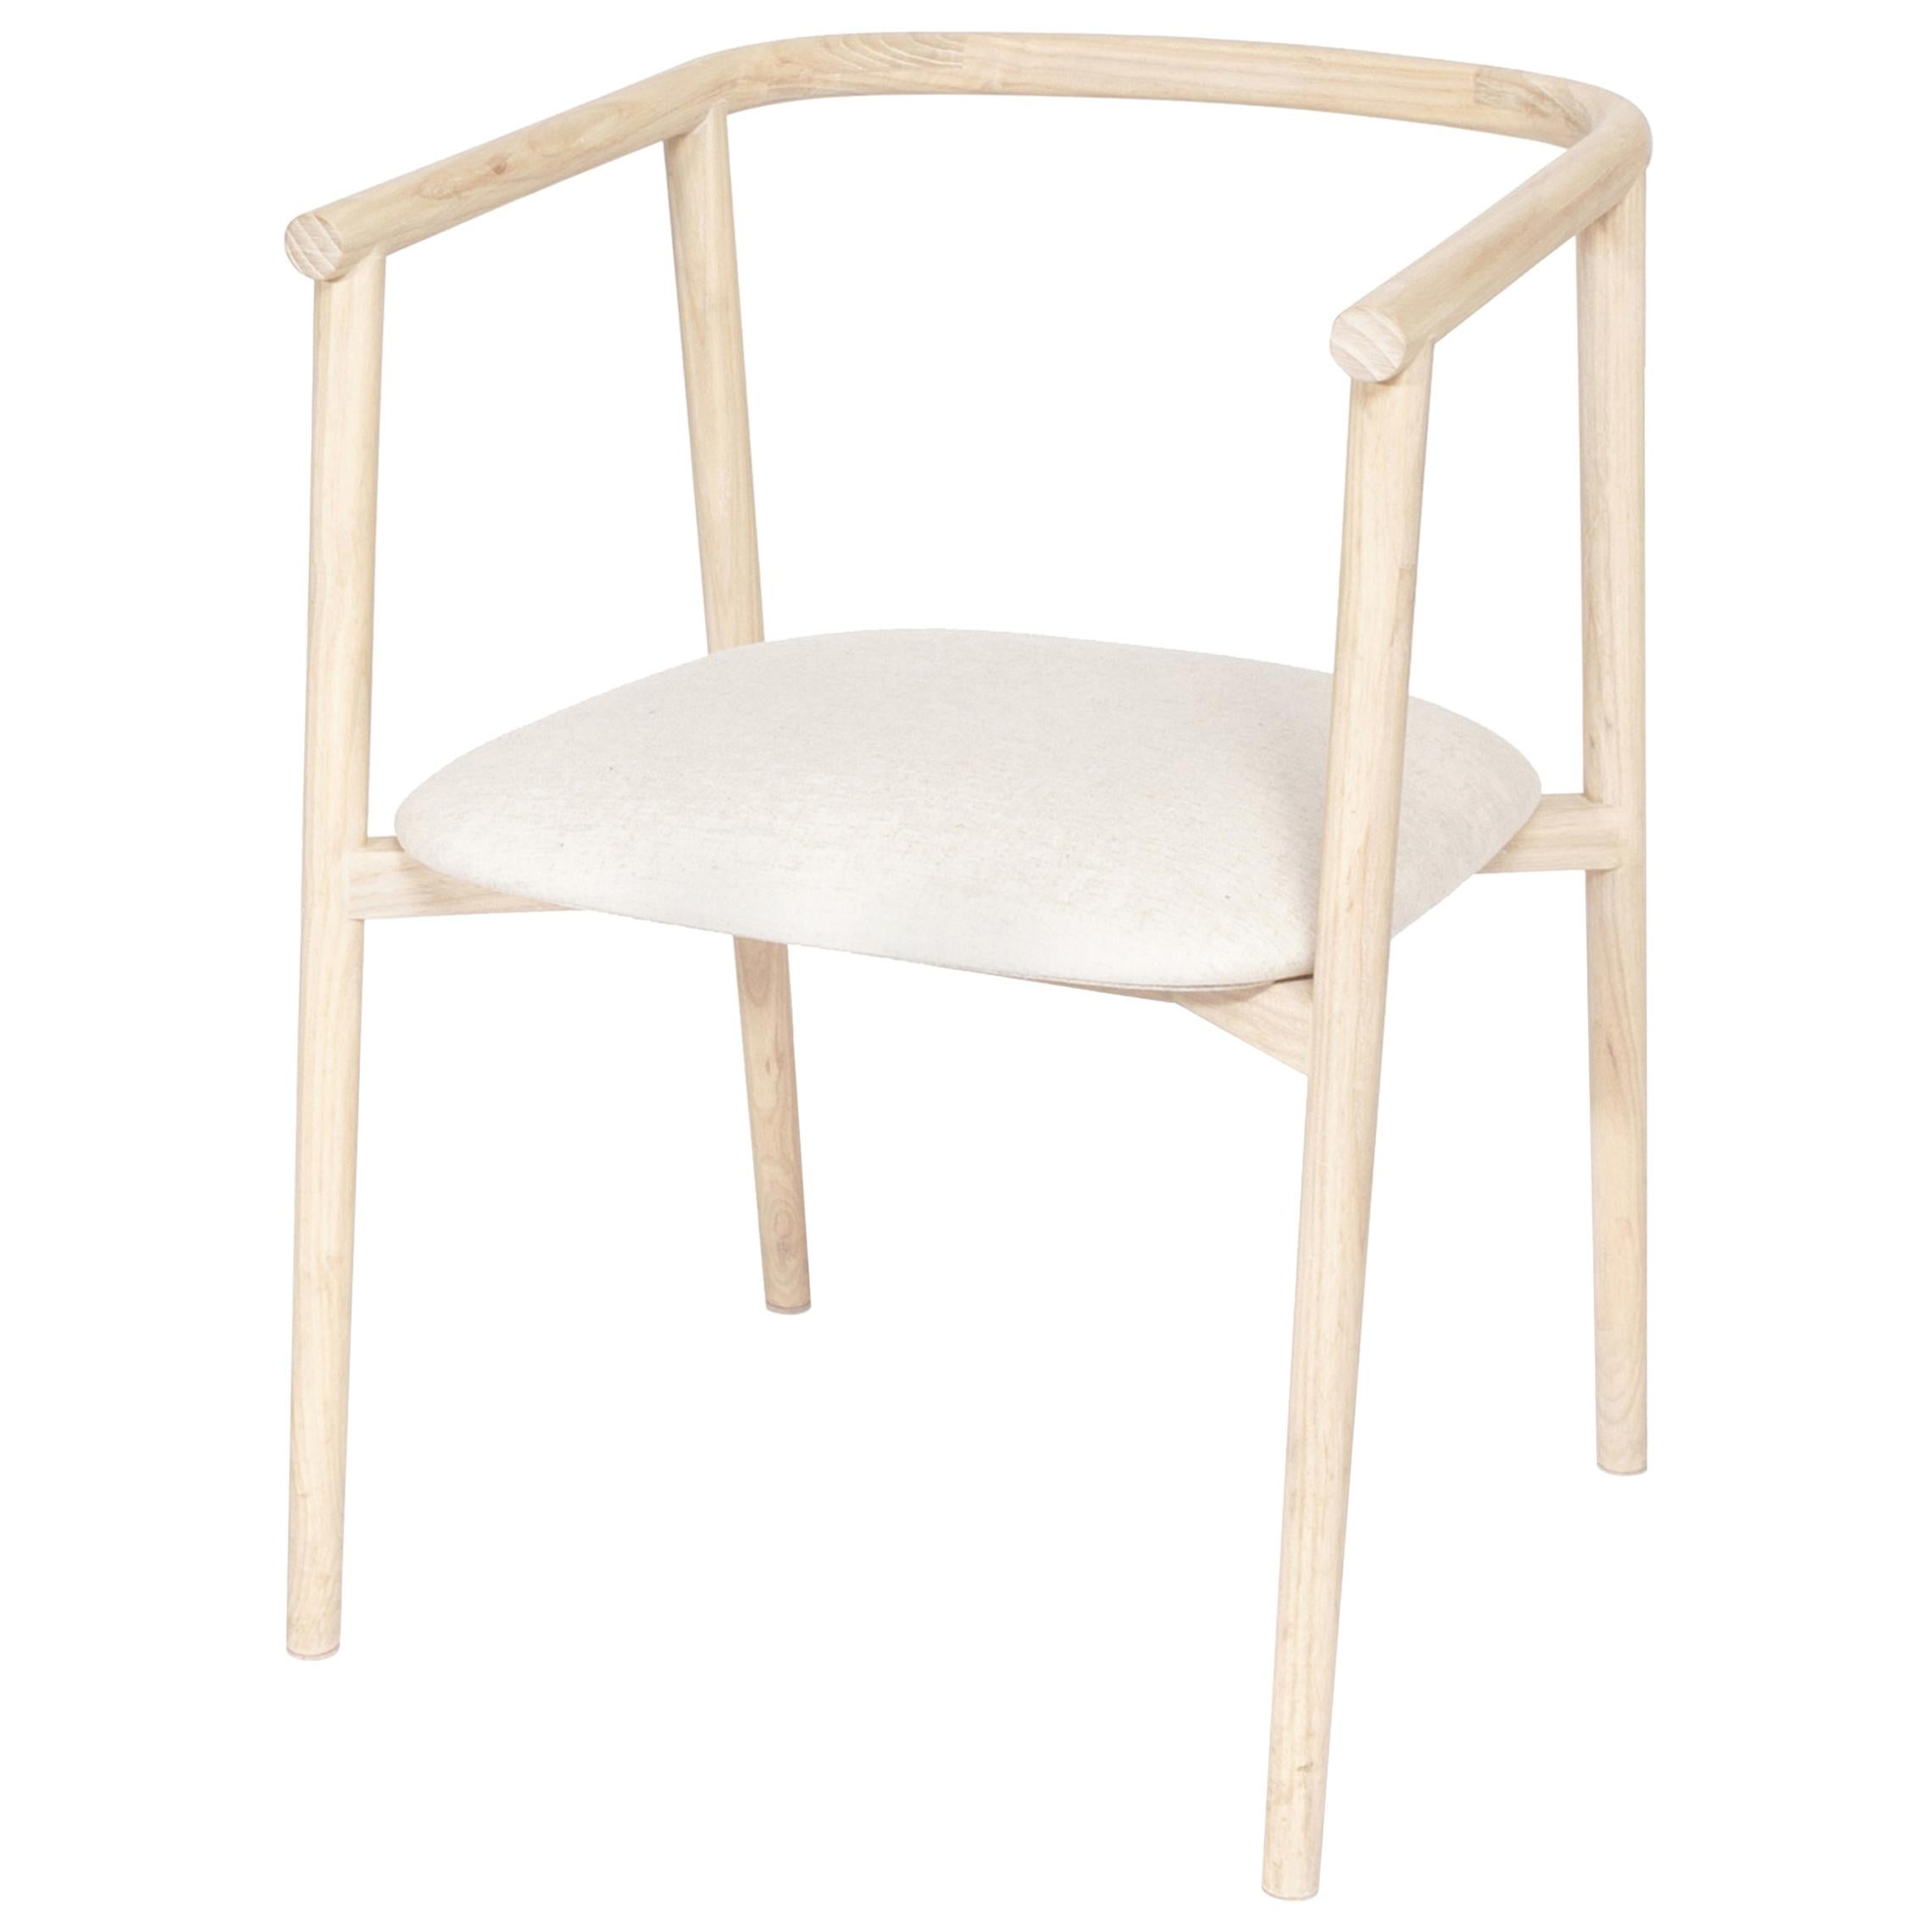 Neutra Ash Carved Wood Chair with Upholstered Seat